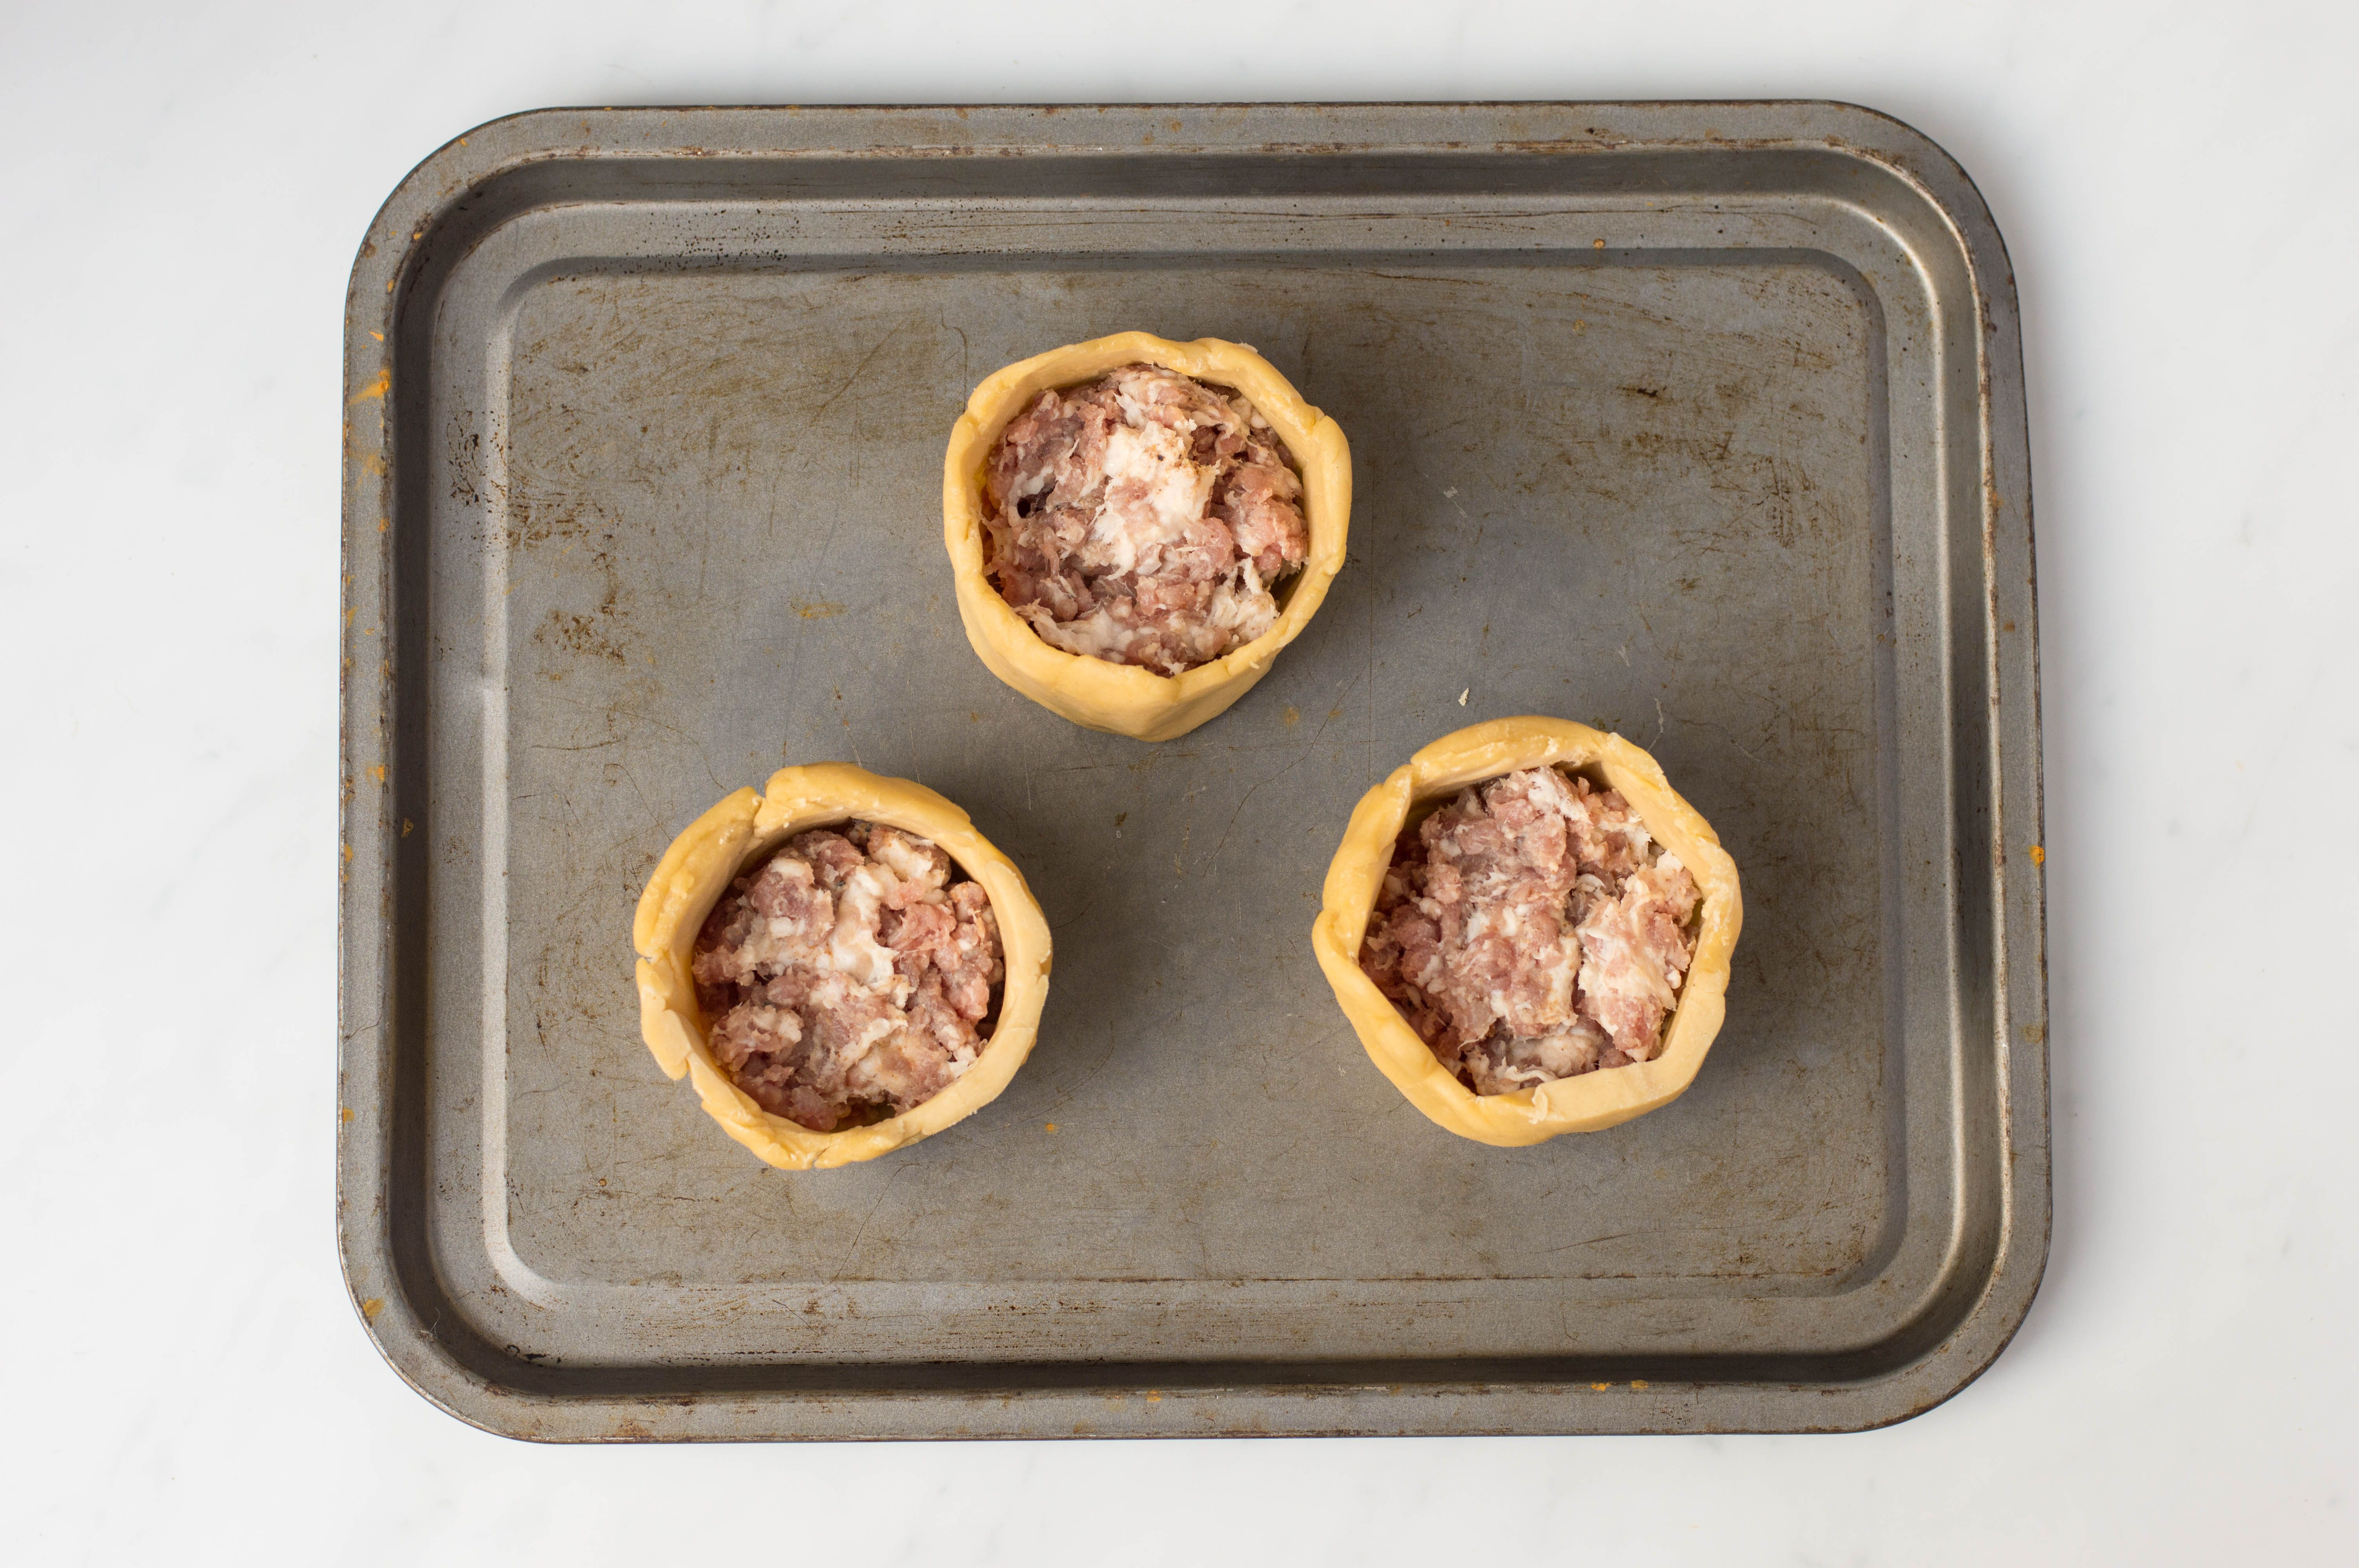 Pastry cases packed with meat